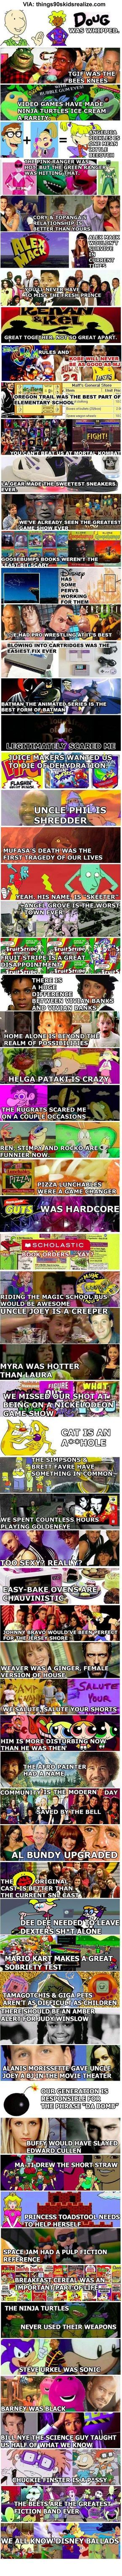 90s kids realize. - Click image to find more hot Pinterest pins